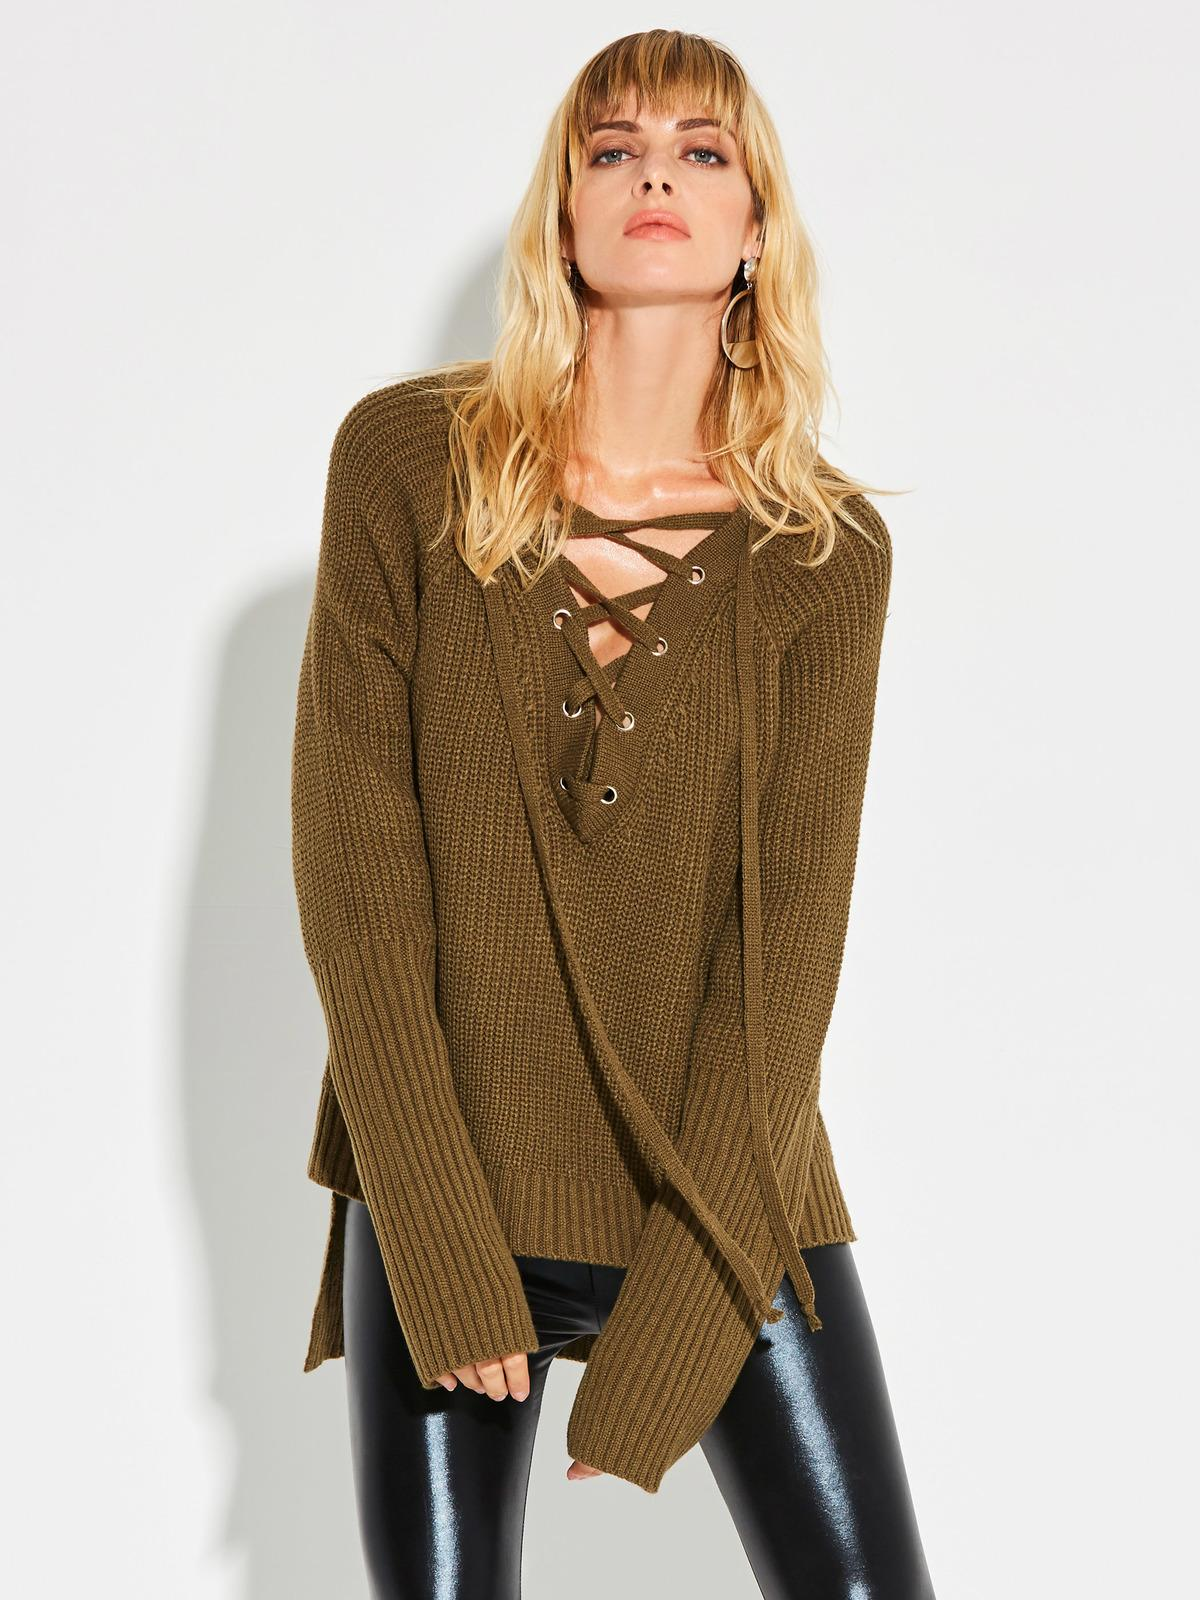 b848c0d51 2019 Women Army Green Sweater Knitwear Lace Up Sexy 2017 Autumn Casual  Loose Knitted Sweater V Neck Winter Oversize Sweater From Qinfeng10